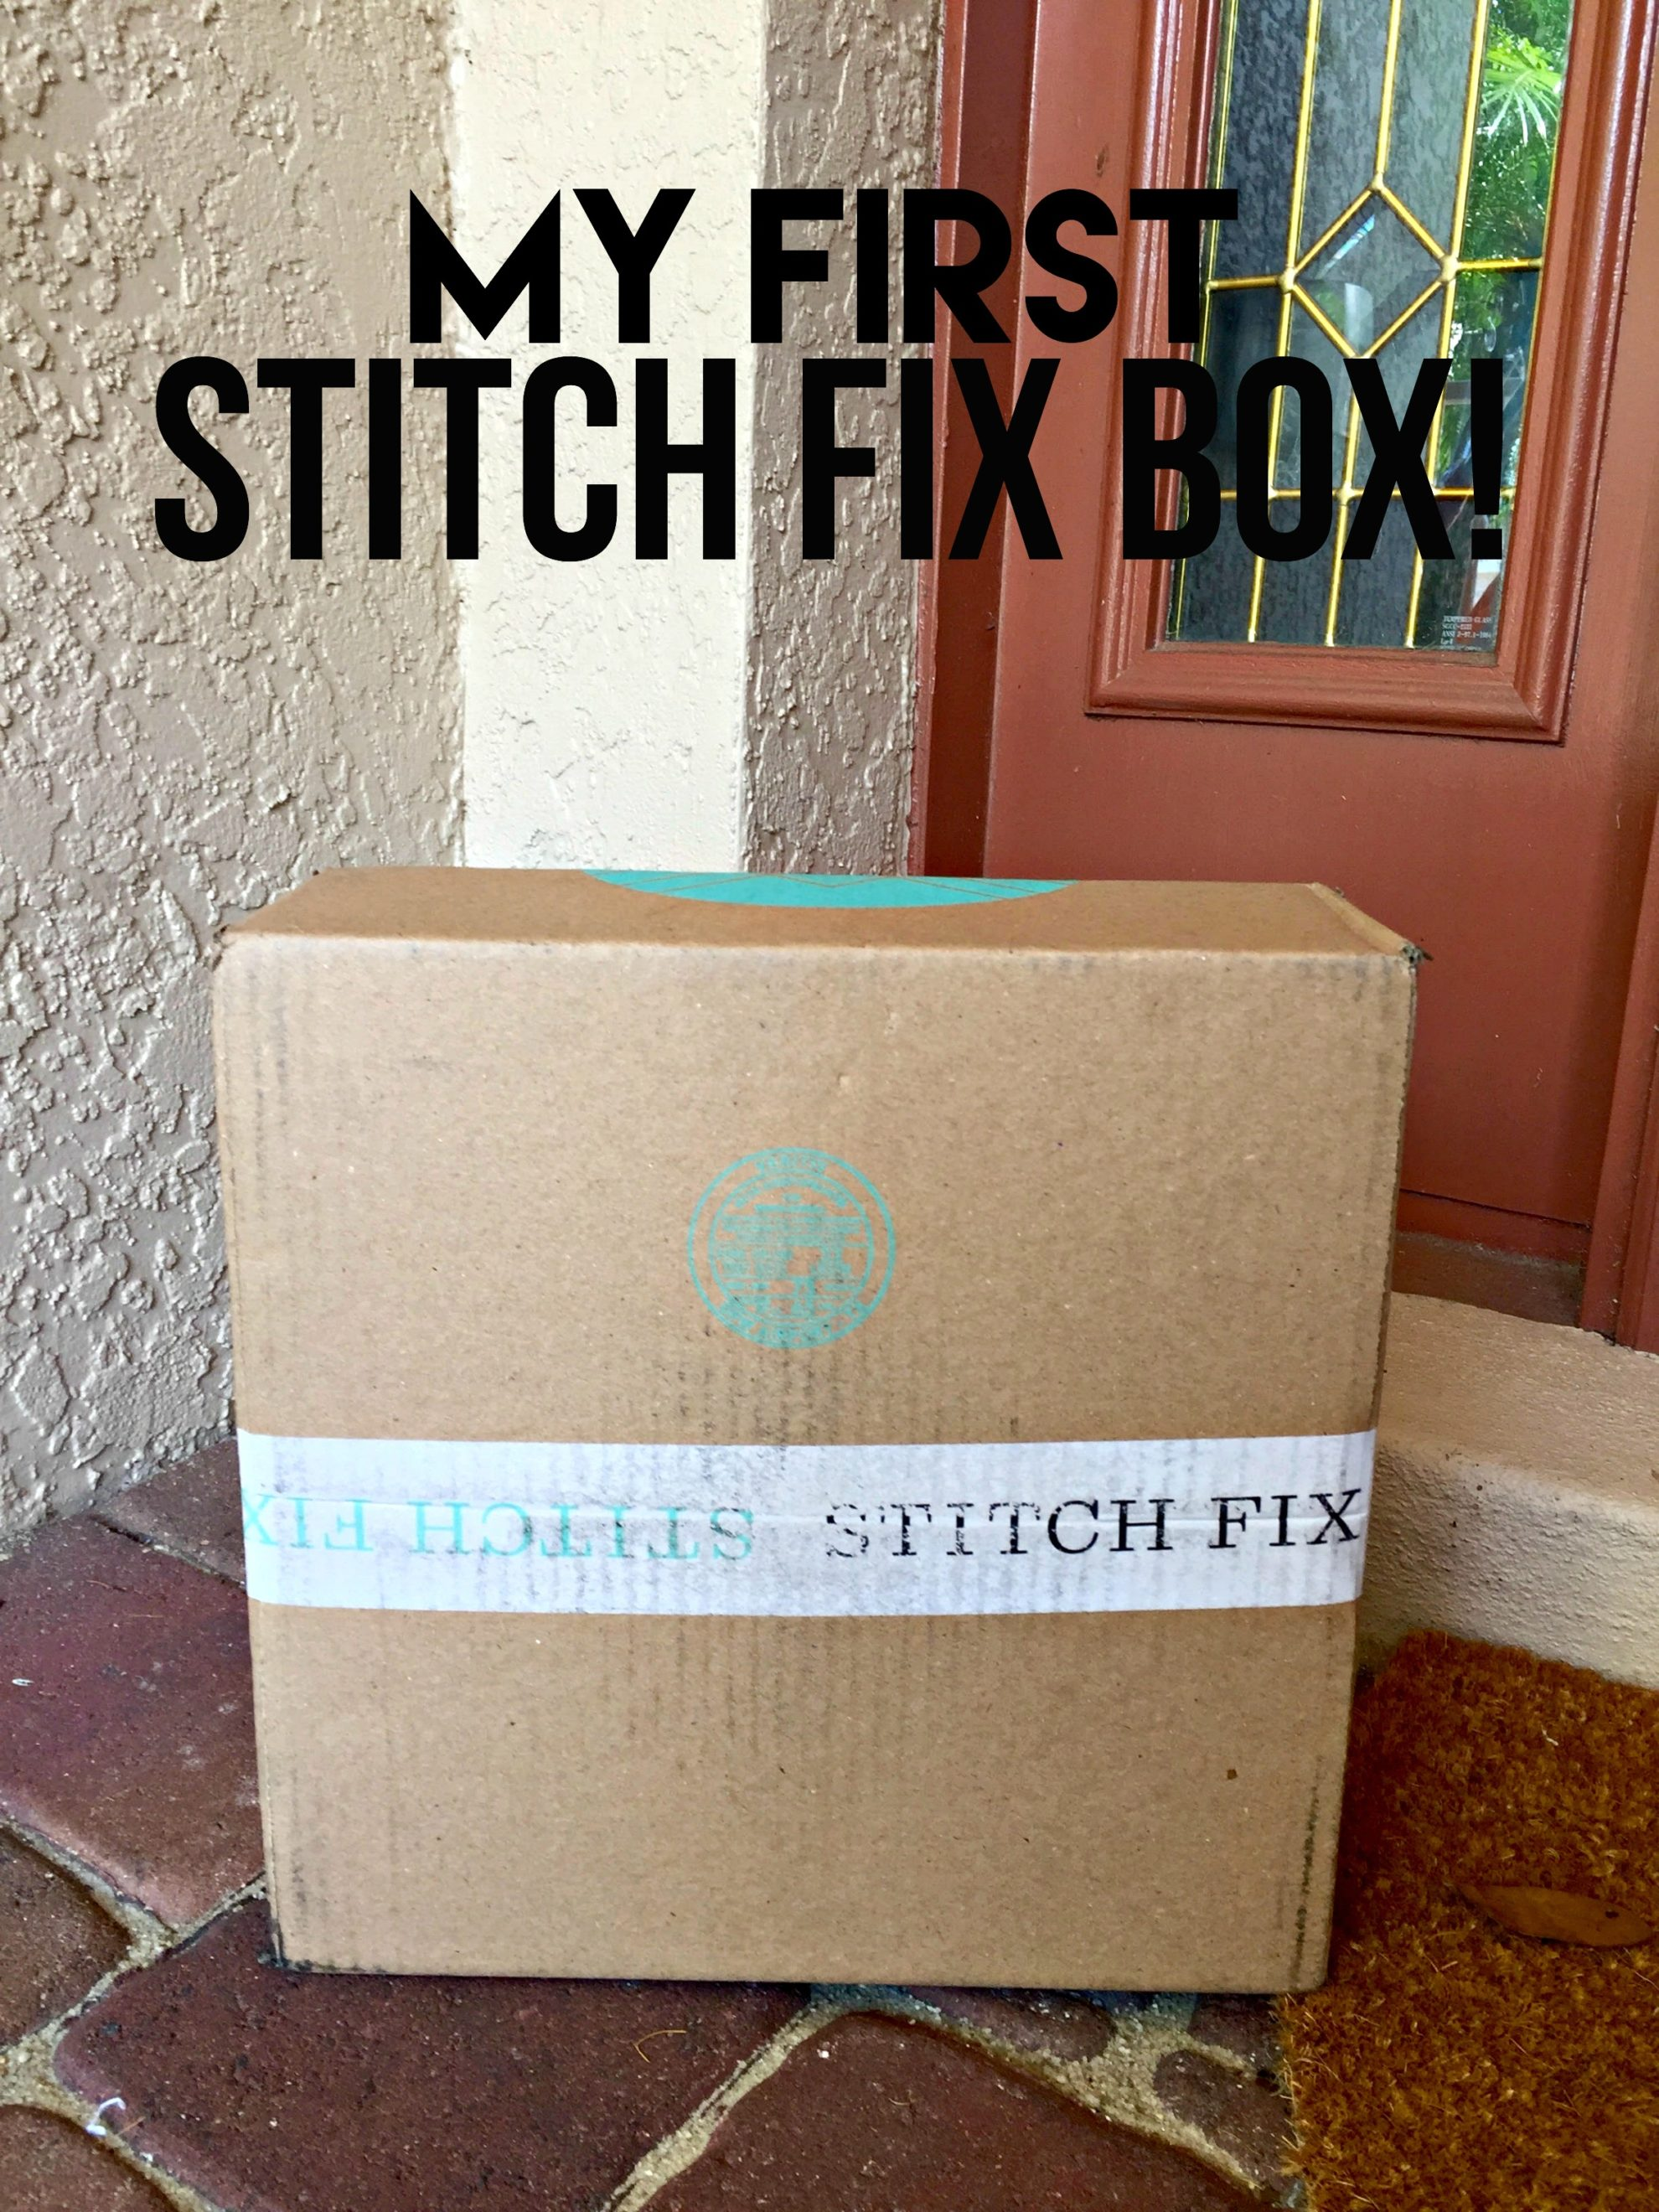 My First Stitch Fix Box!